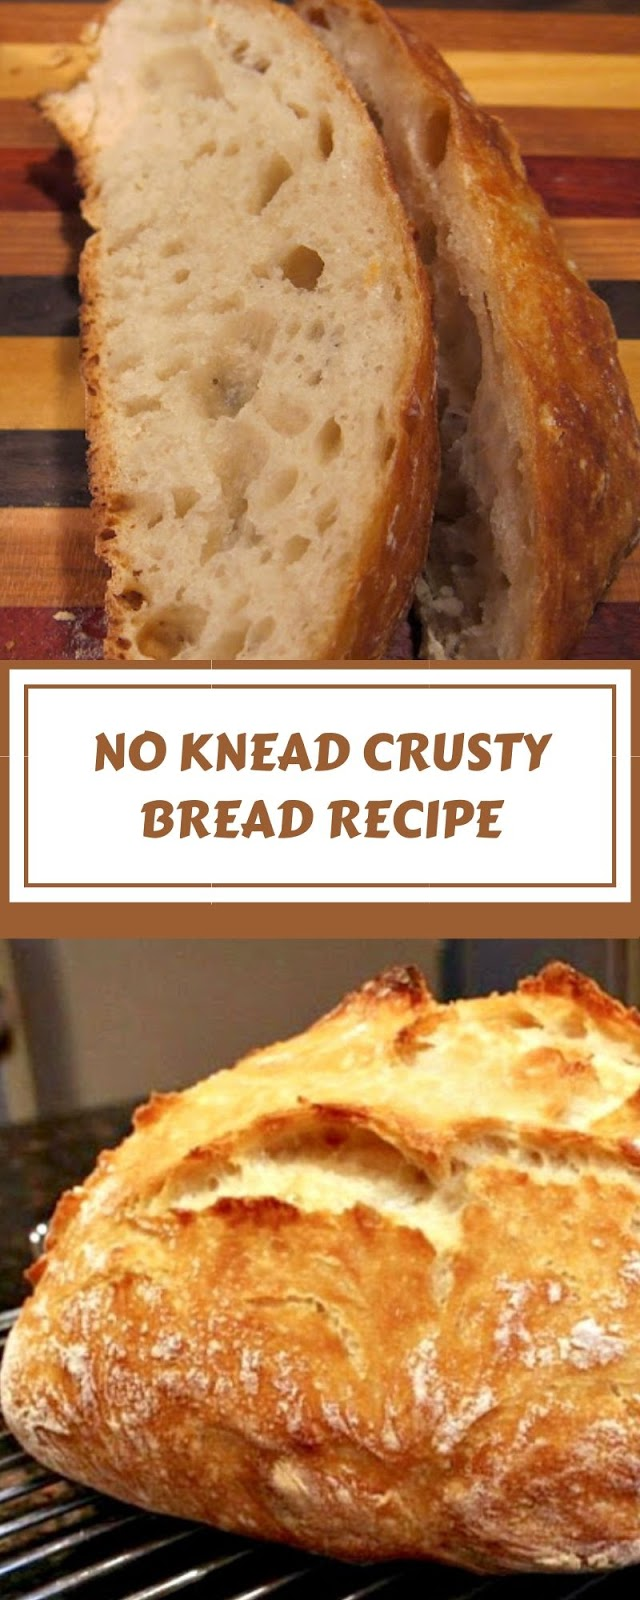 NO KNEAD CRUSTY BREAD RECIPE